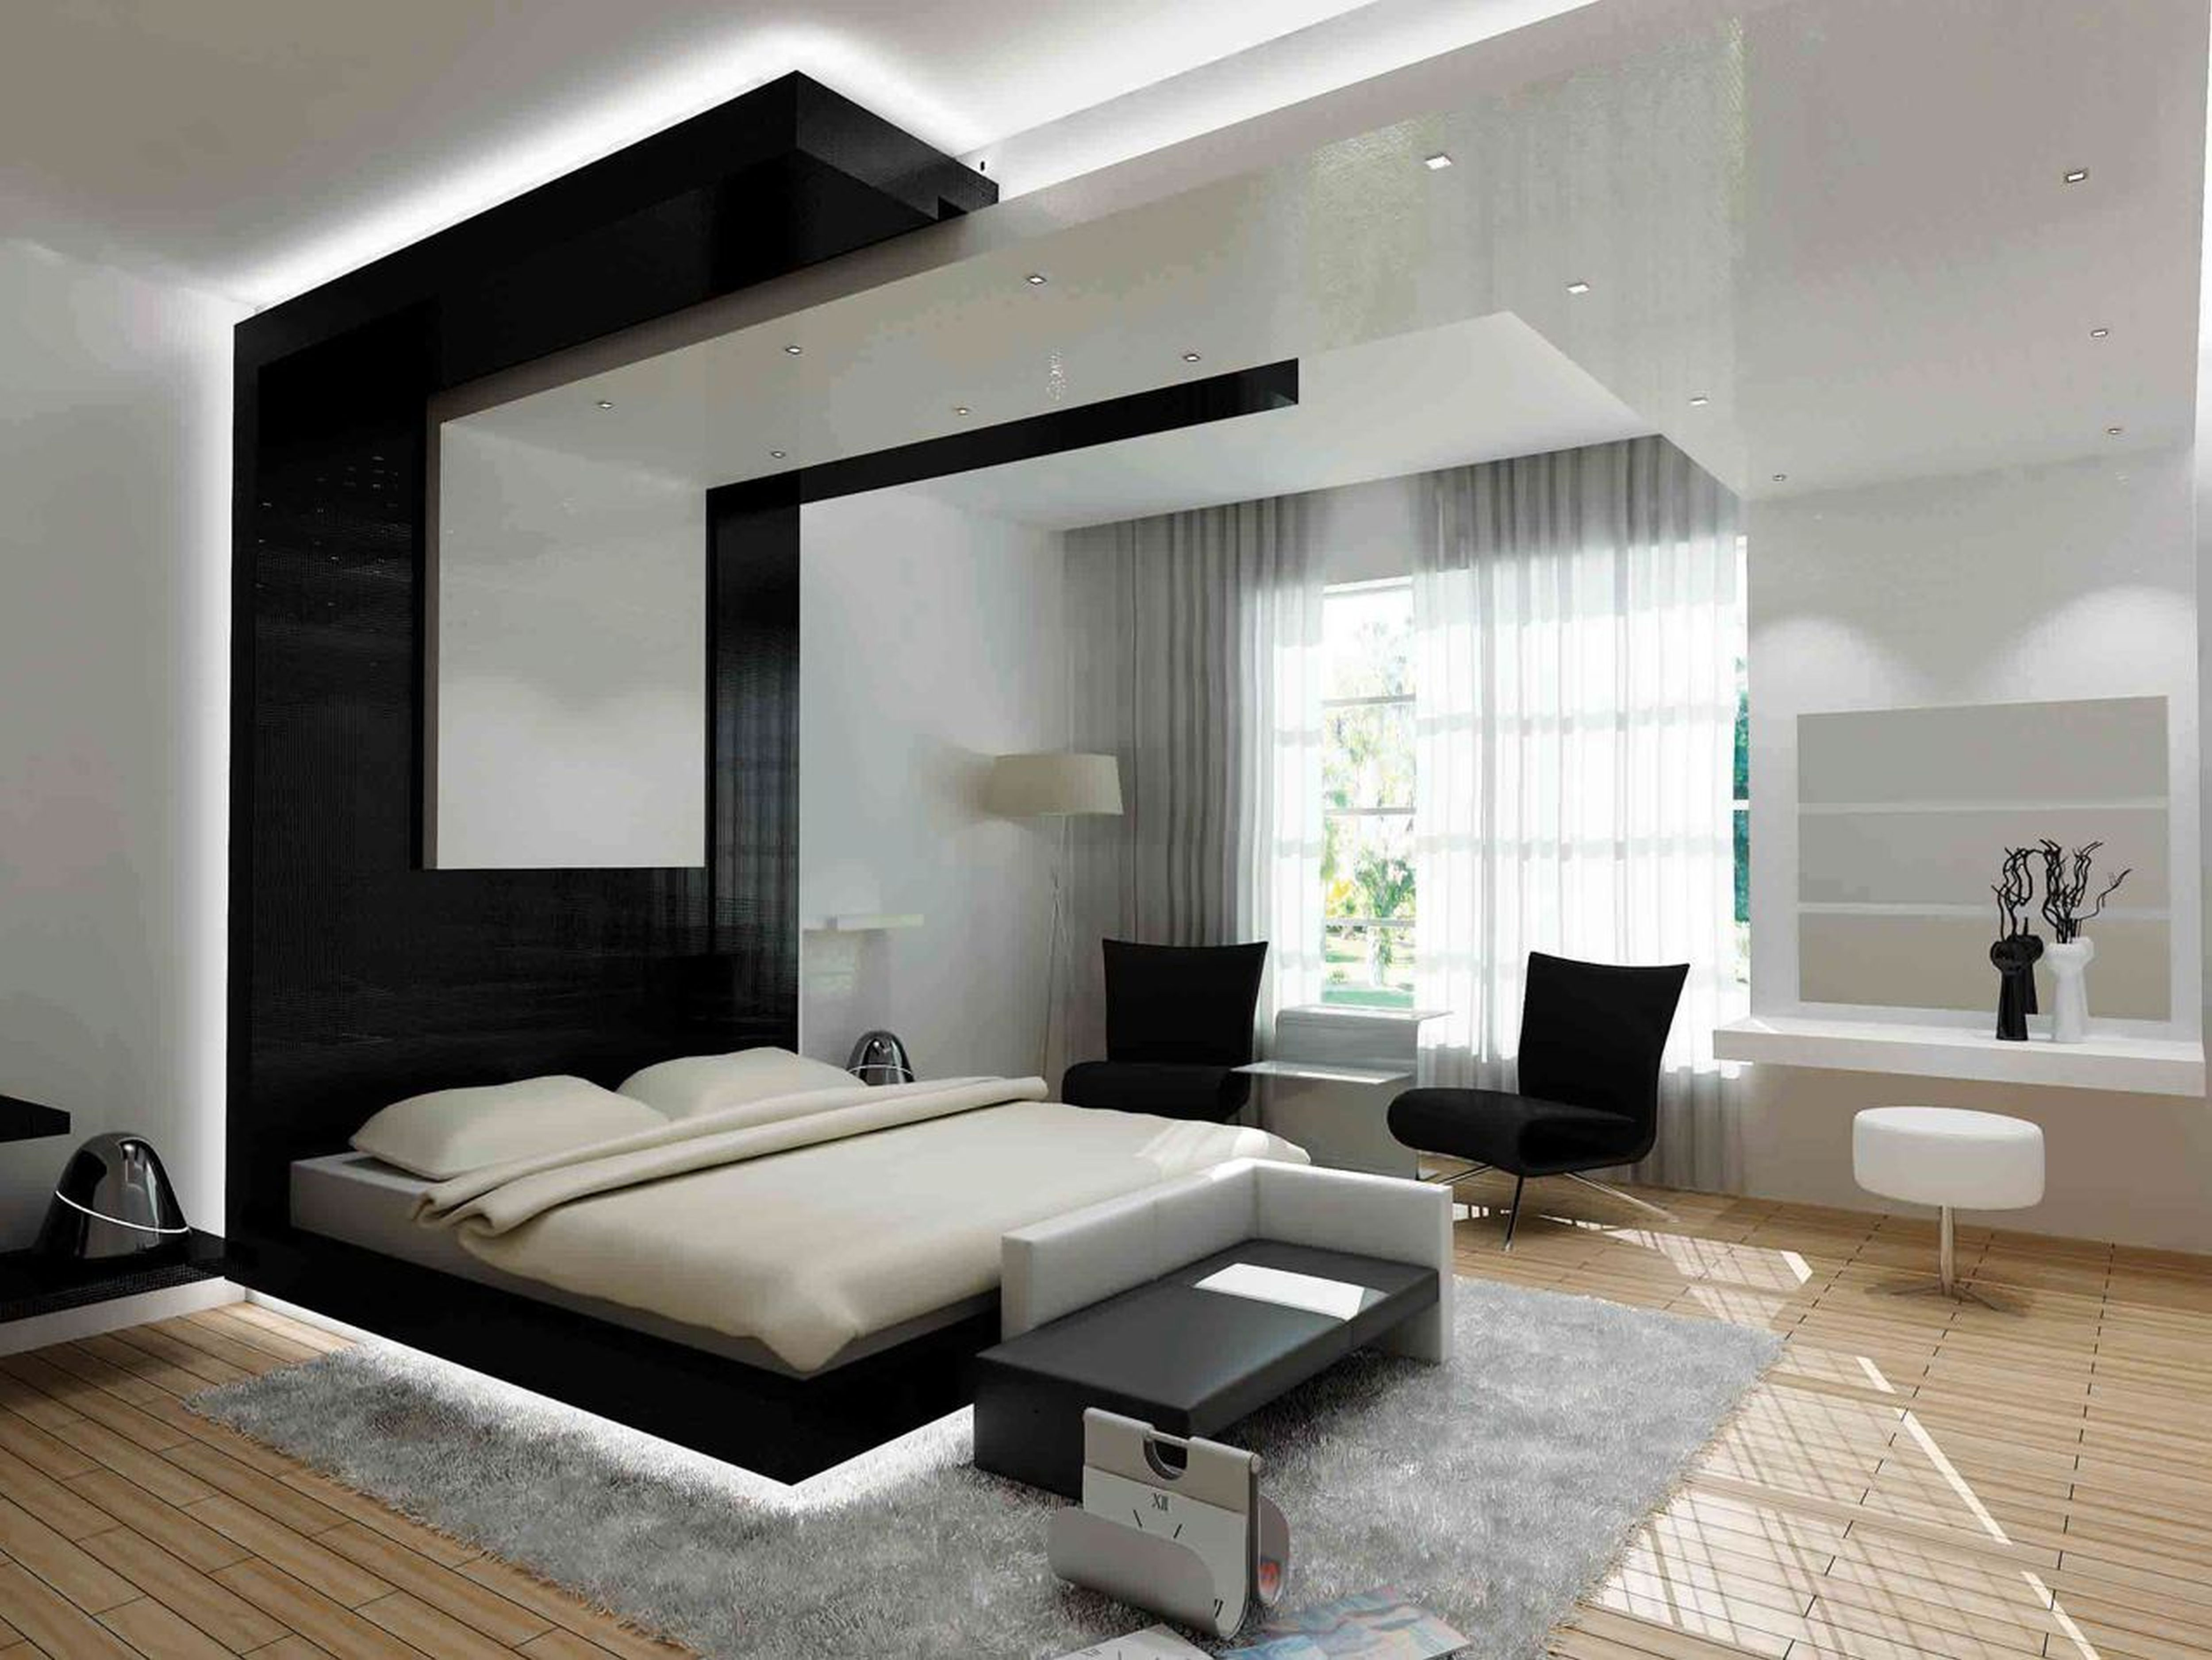 Interior Design Bedroom Amusing Modern Bedroom Perfect Design On Home Architecture Design Ideas Inspiration Design